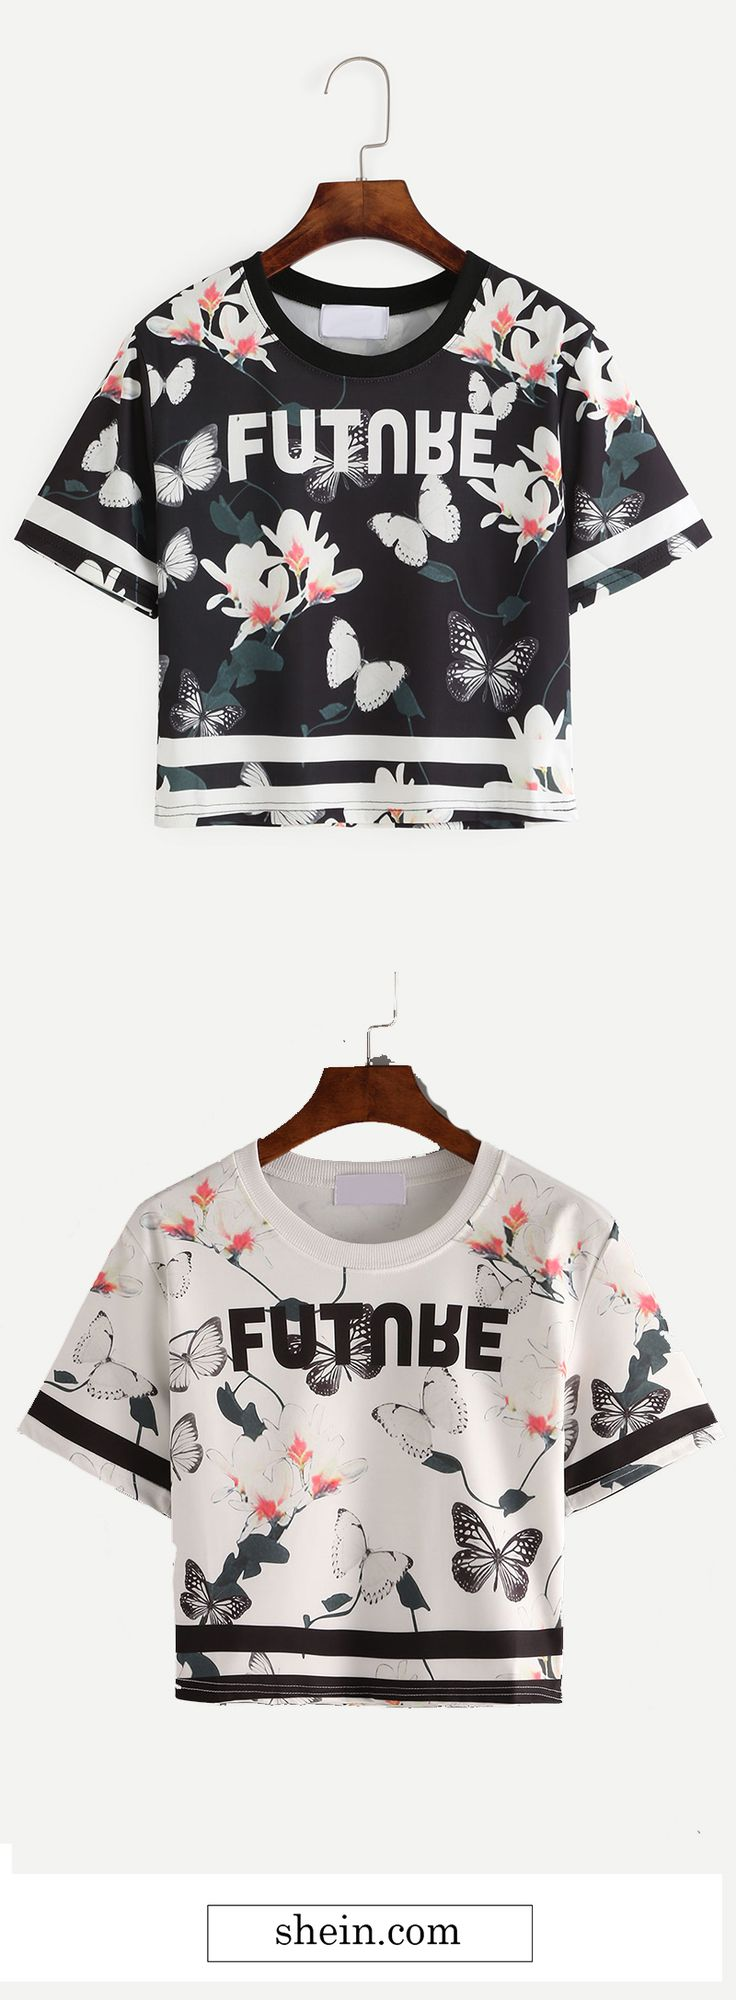 Letter & Butterfly Print Crop T-shirt Collect.